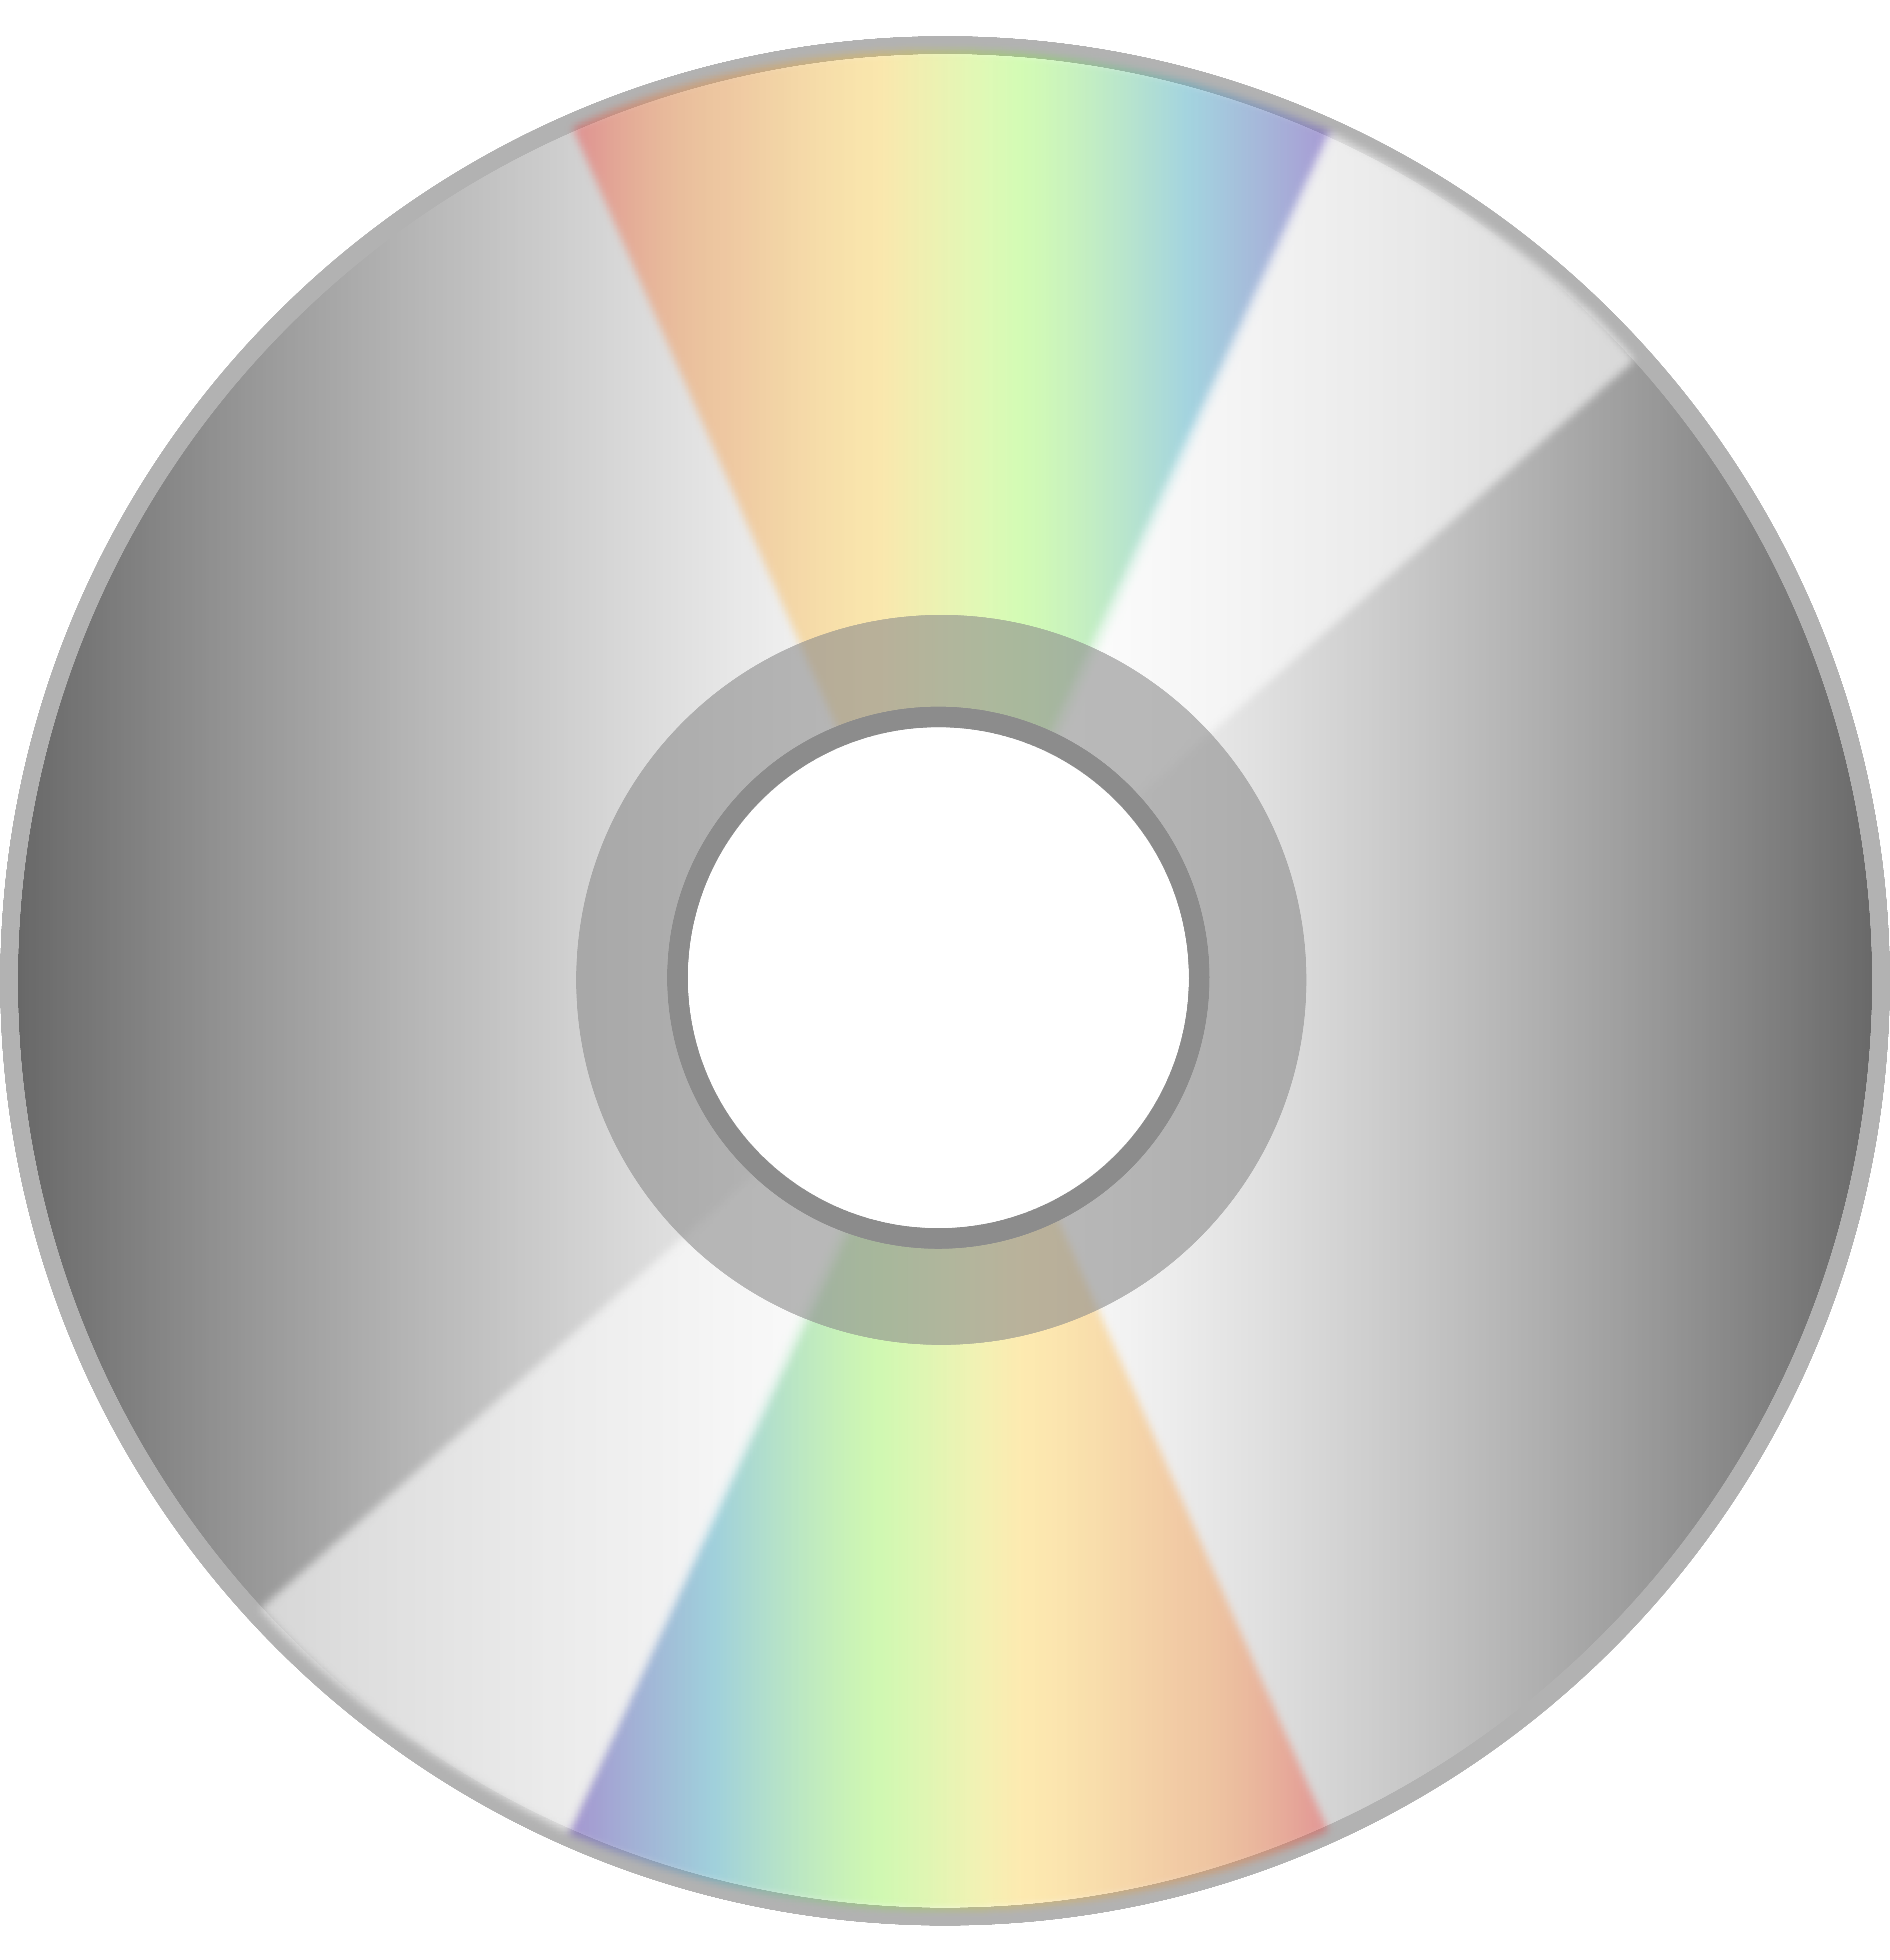 Cd clipart software, Cd software Transparent FREE for.